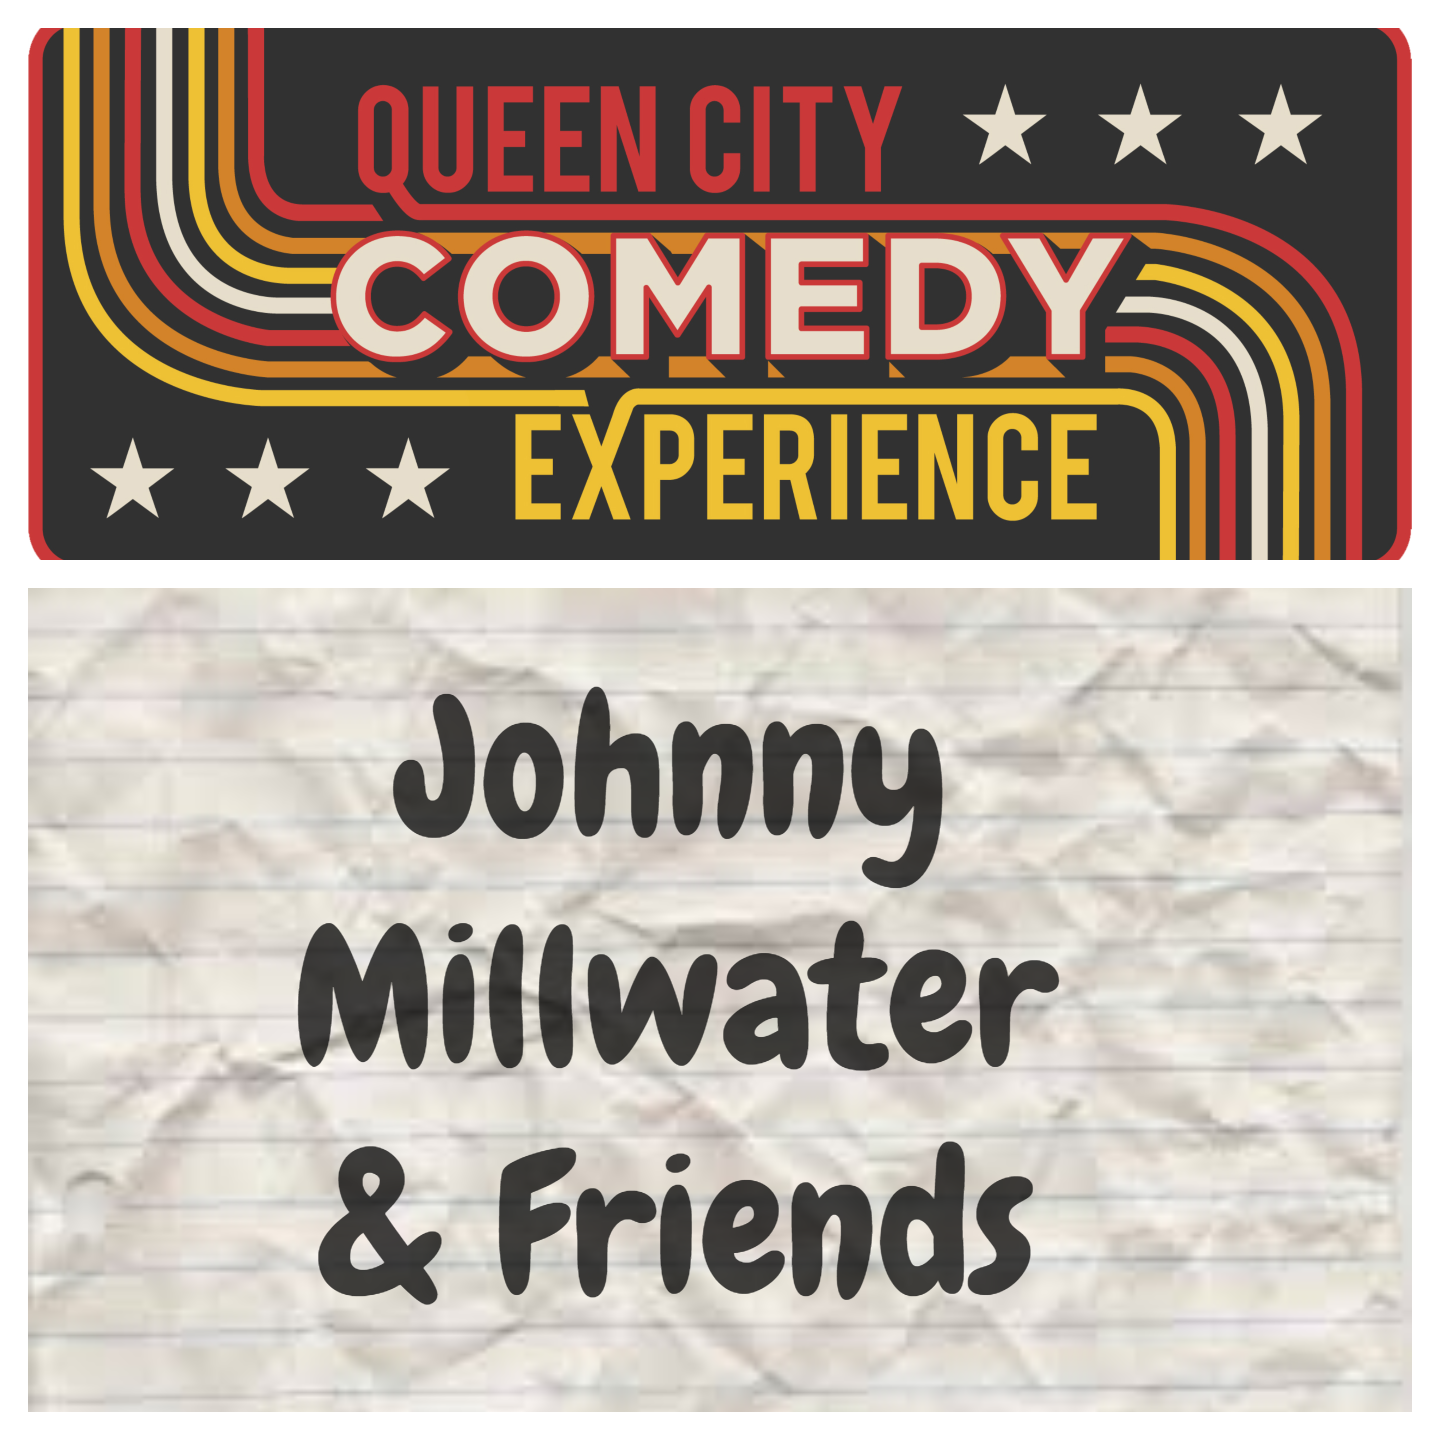 Johnny Millwater & Friends